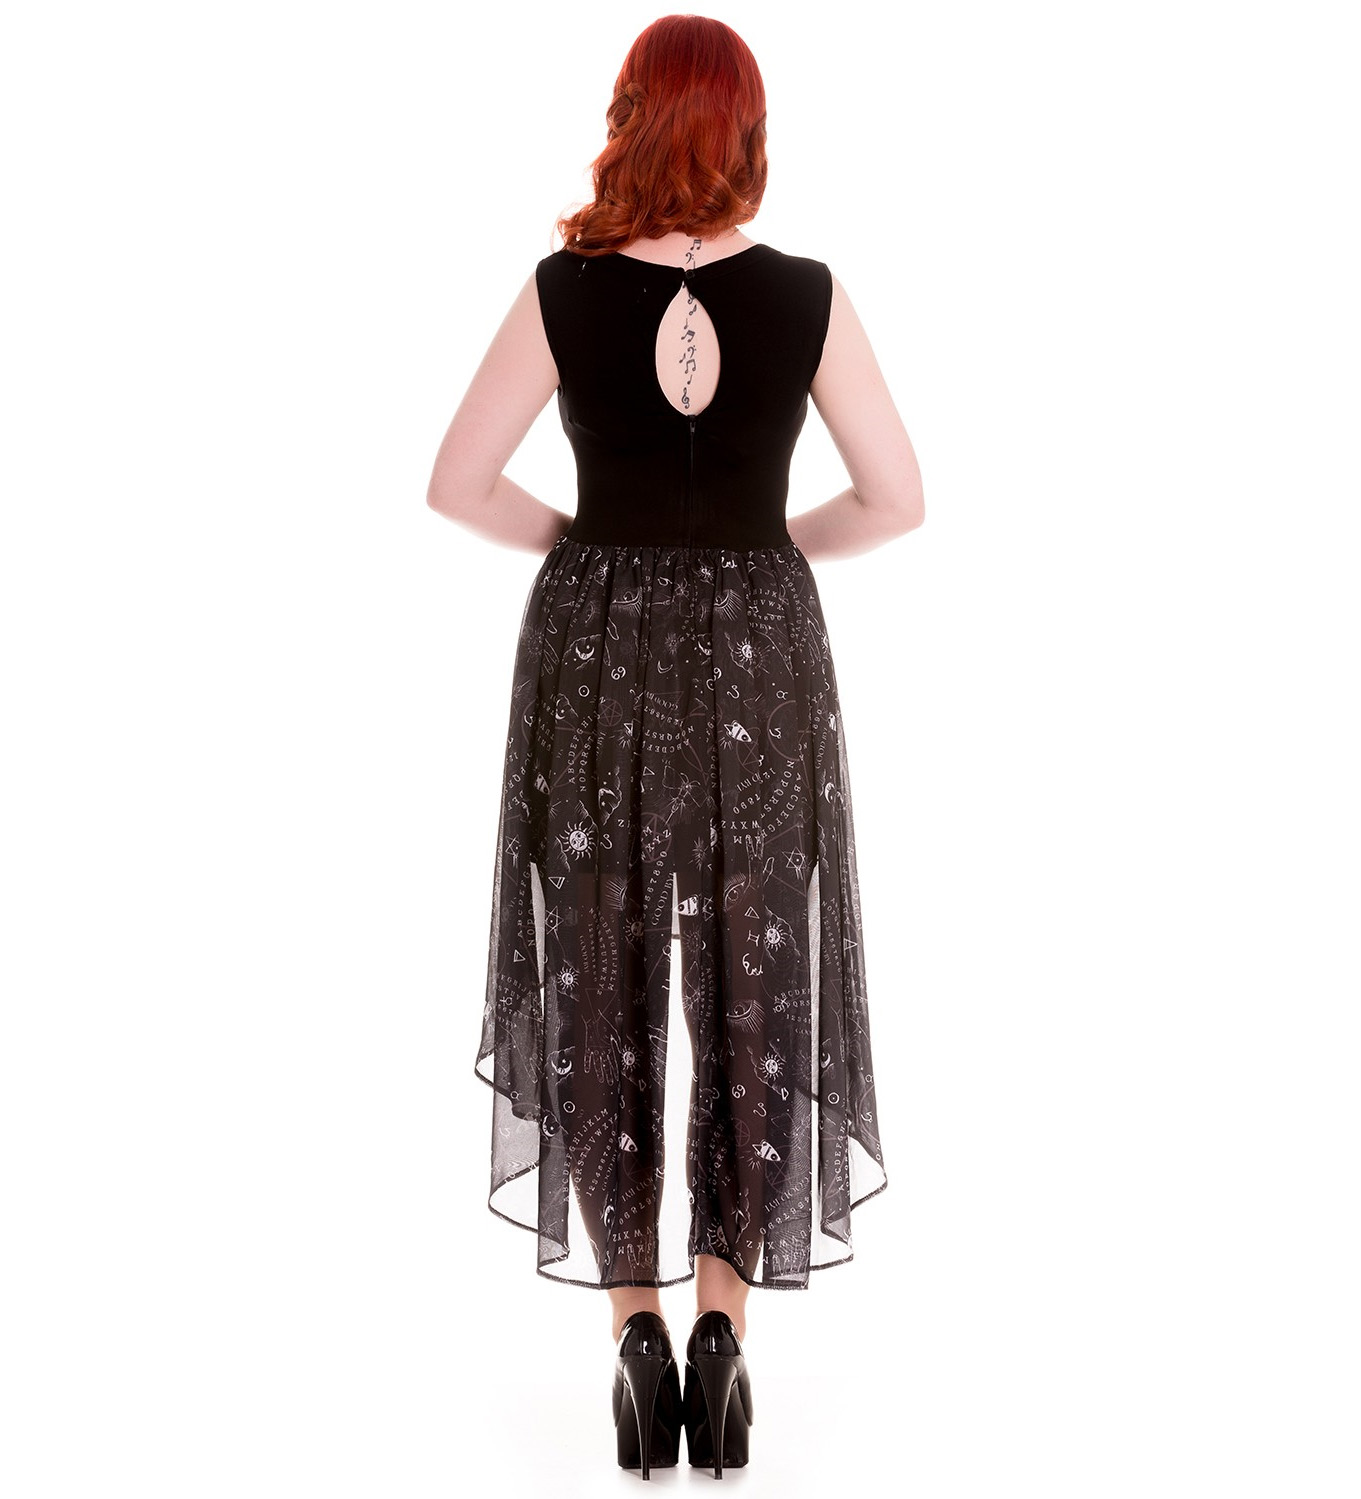 HELL-BUNNY-Spin-Doctor-Goth-Black-Witch-Ouija-SPIRIT-Dress-All-Sizes thumbnail 5